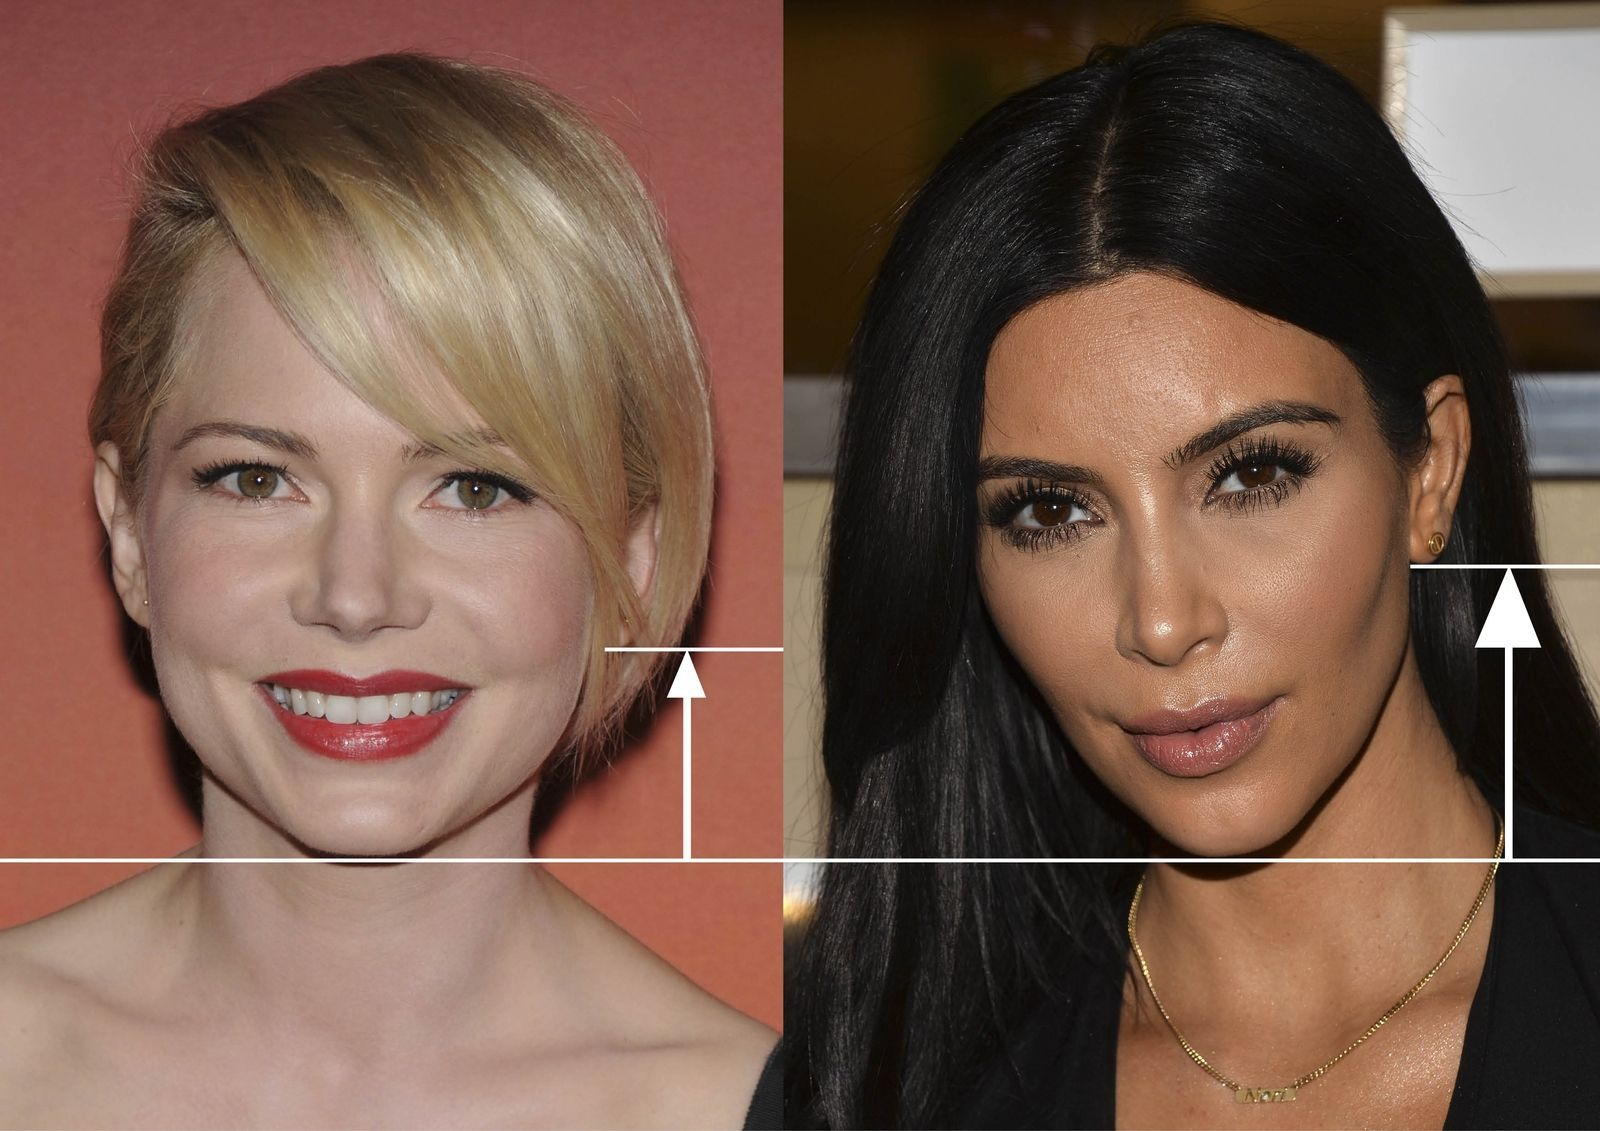 How To Tell If A Pixie Cut Will Suit You Here S How To Tell If Short Hair Will Suit You Hair Mistakes Hair Test Short Hair Styles